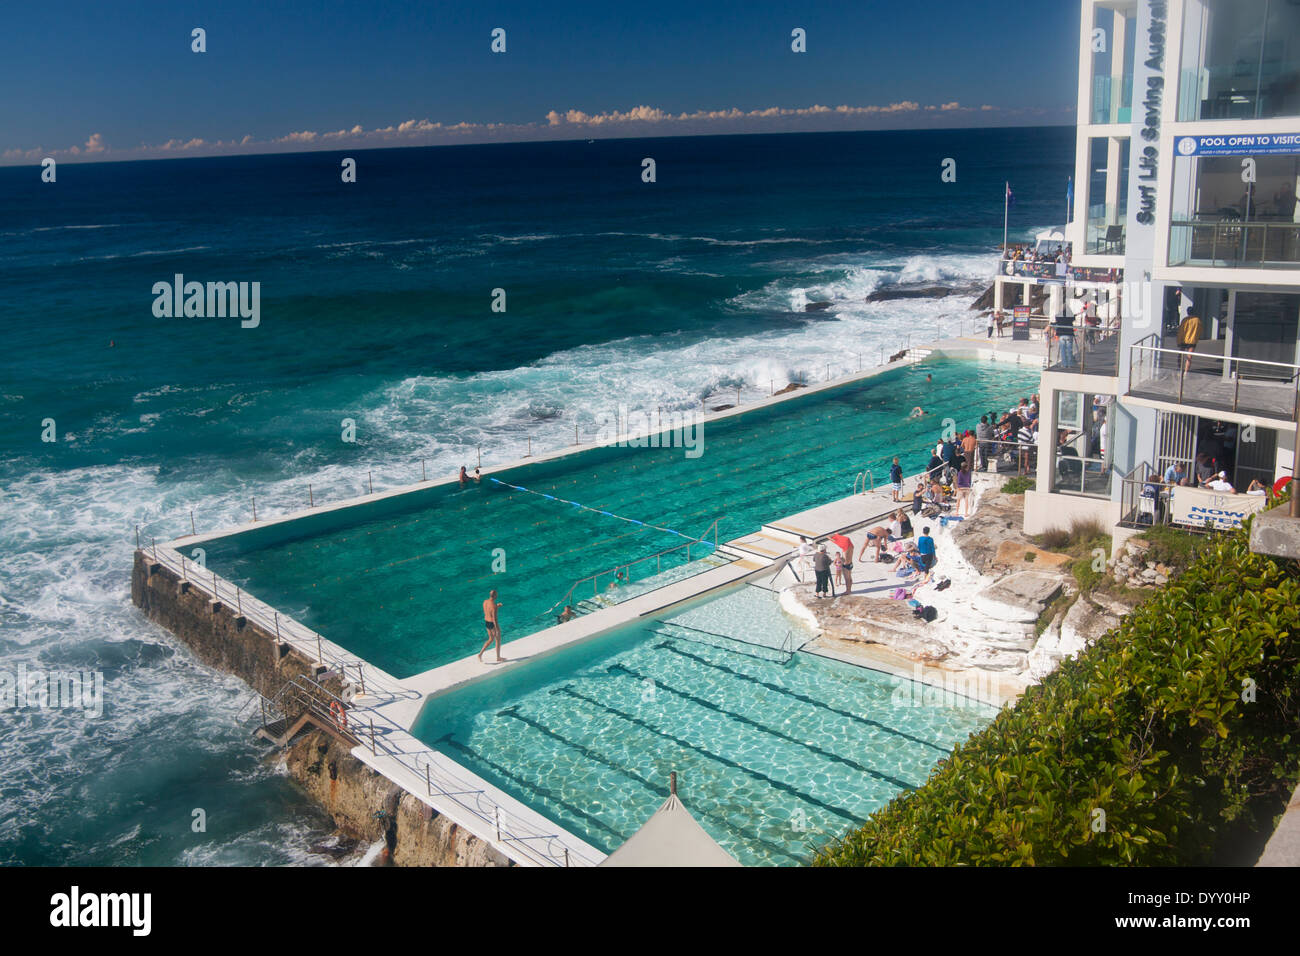 Bondi Icebergs Swimming Pool Sydney New South Wales Nsw Australia Stock Photo Royalty Free